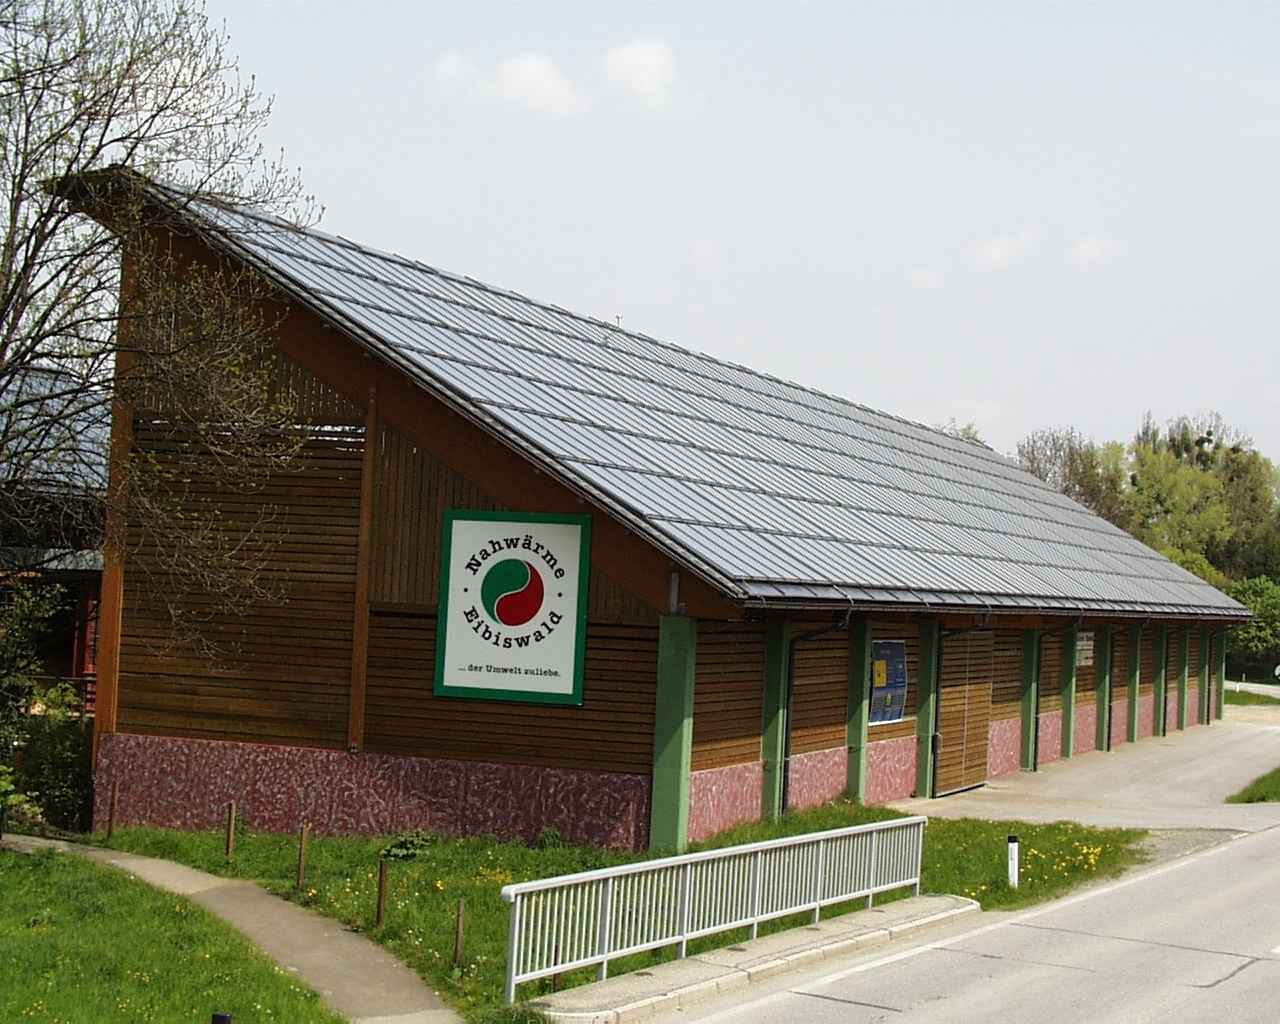 S.O.L.I.D Solar Heat Europe – Collector field for district heating, Eibiswald, Austria